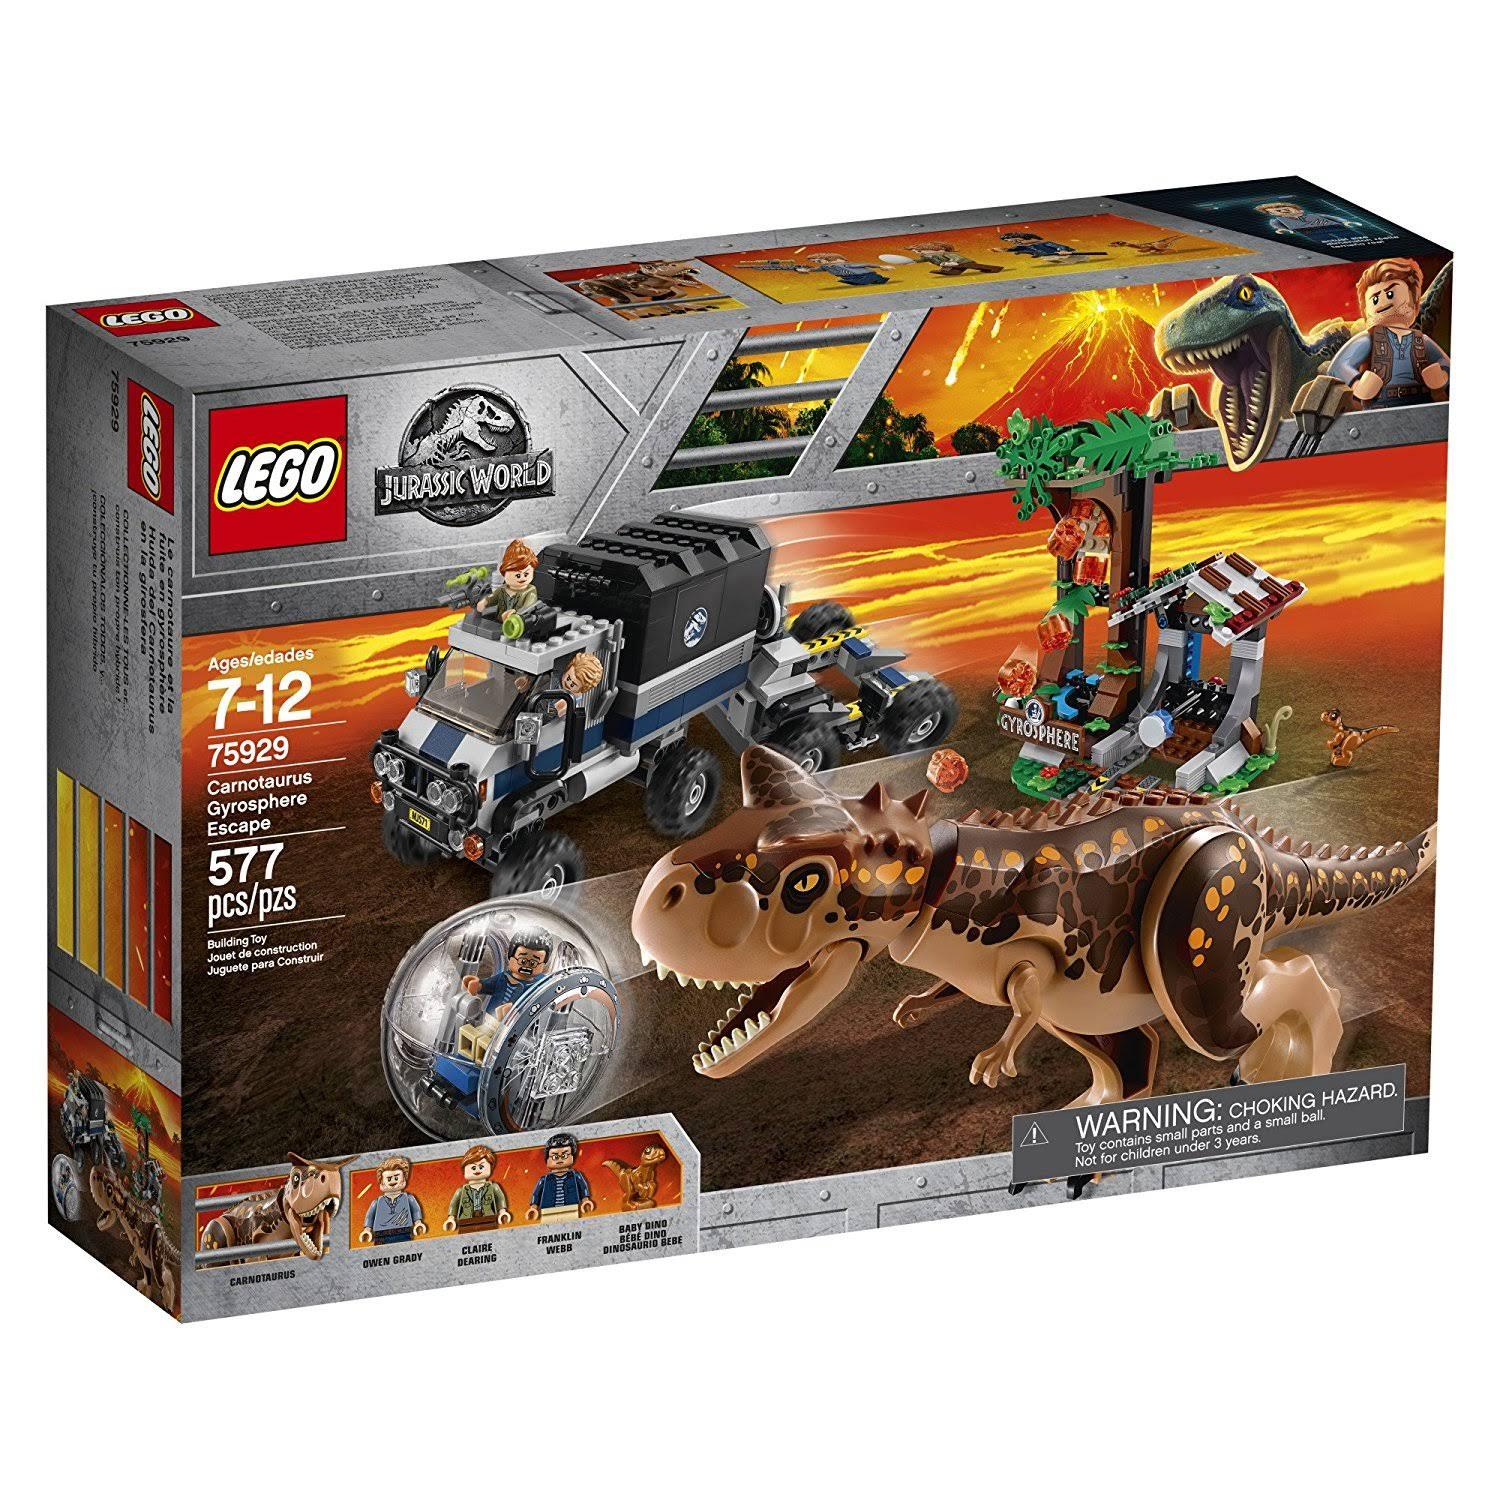 Lego Jurassic World Carnotaurus Gyrosphere Escape Construction Kit